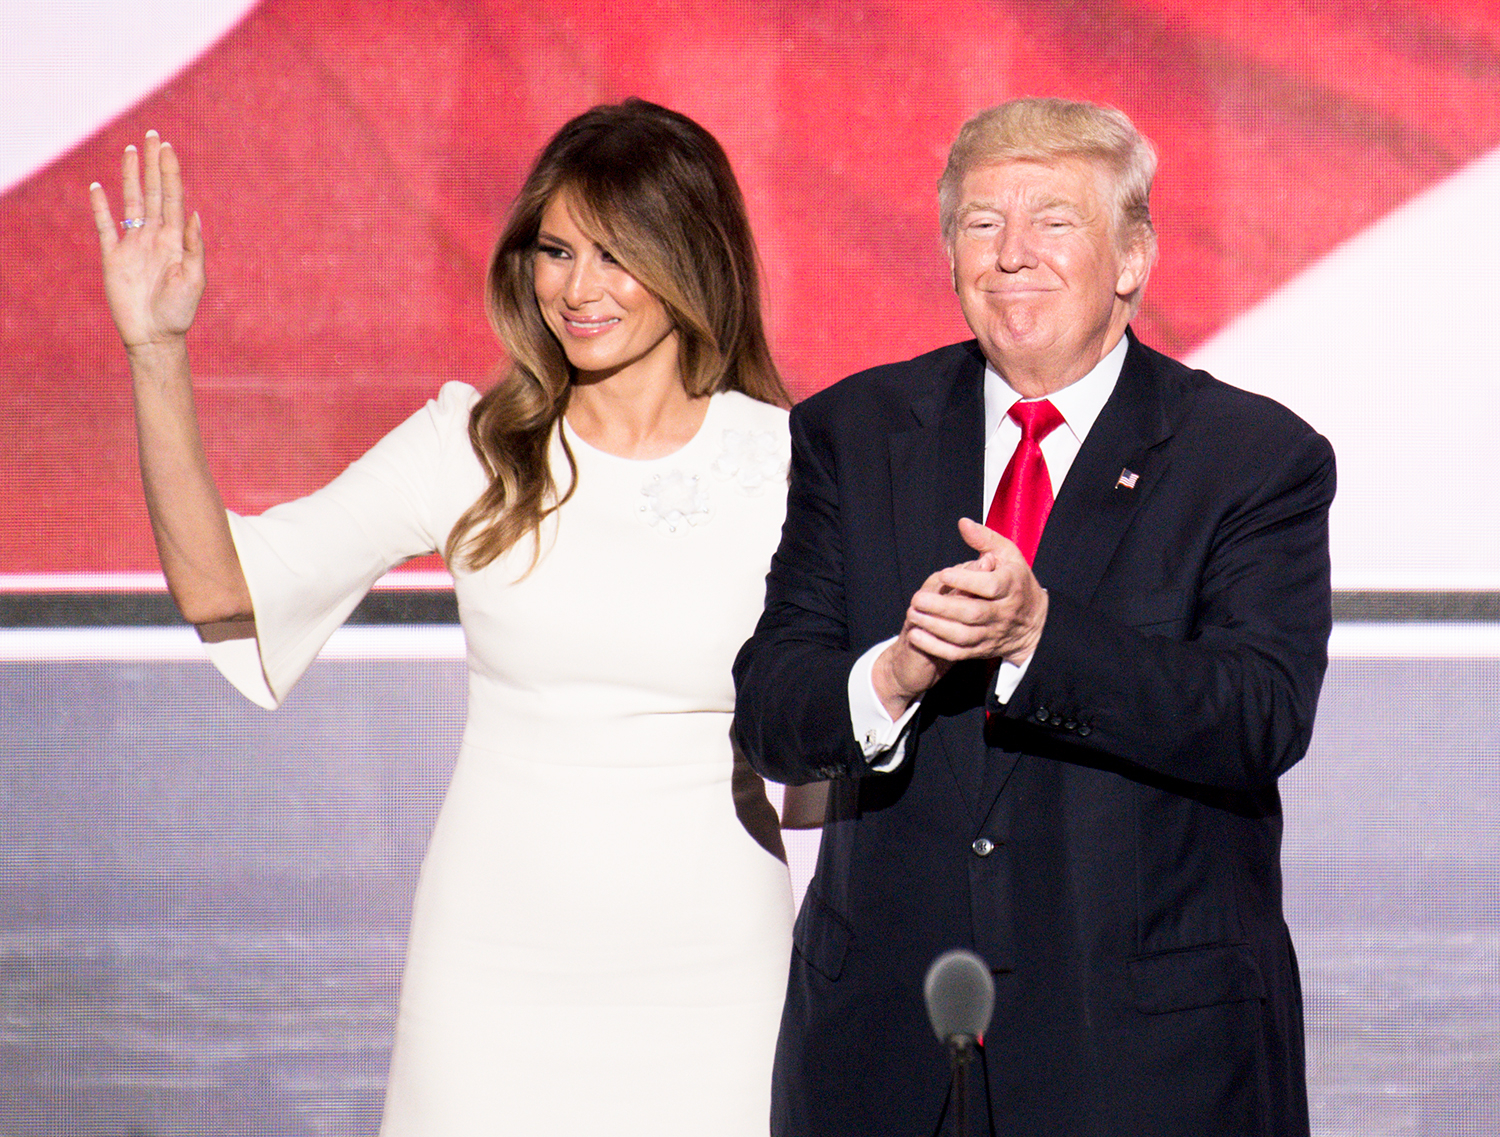 Donald Trump is joined on stage by his wife Melania Trump after delivering his acceptance speech at the 2016 Republican National Convention in Cleveland, Ohio on Thursday, July 21, 2016.